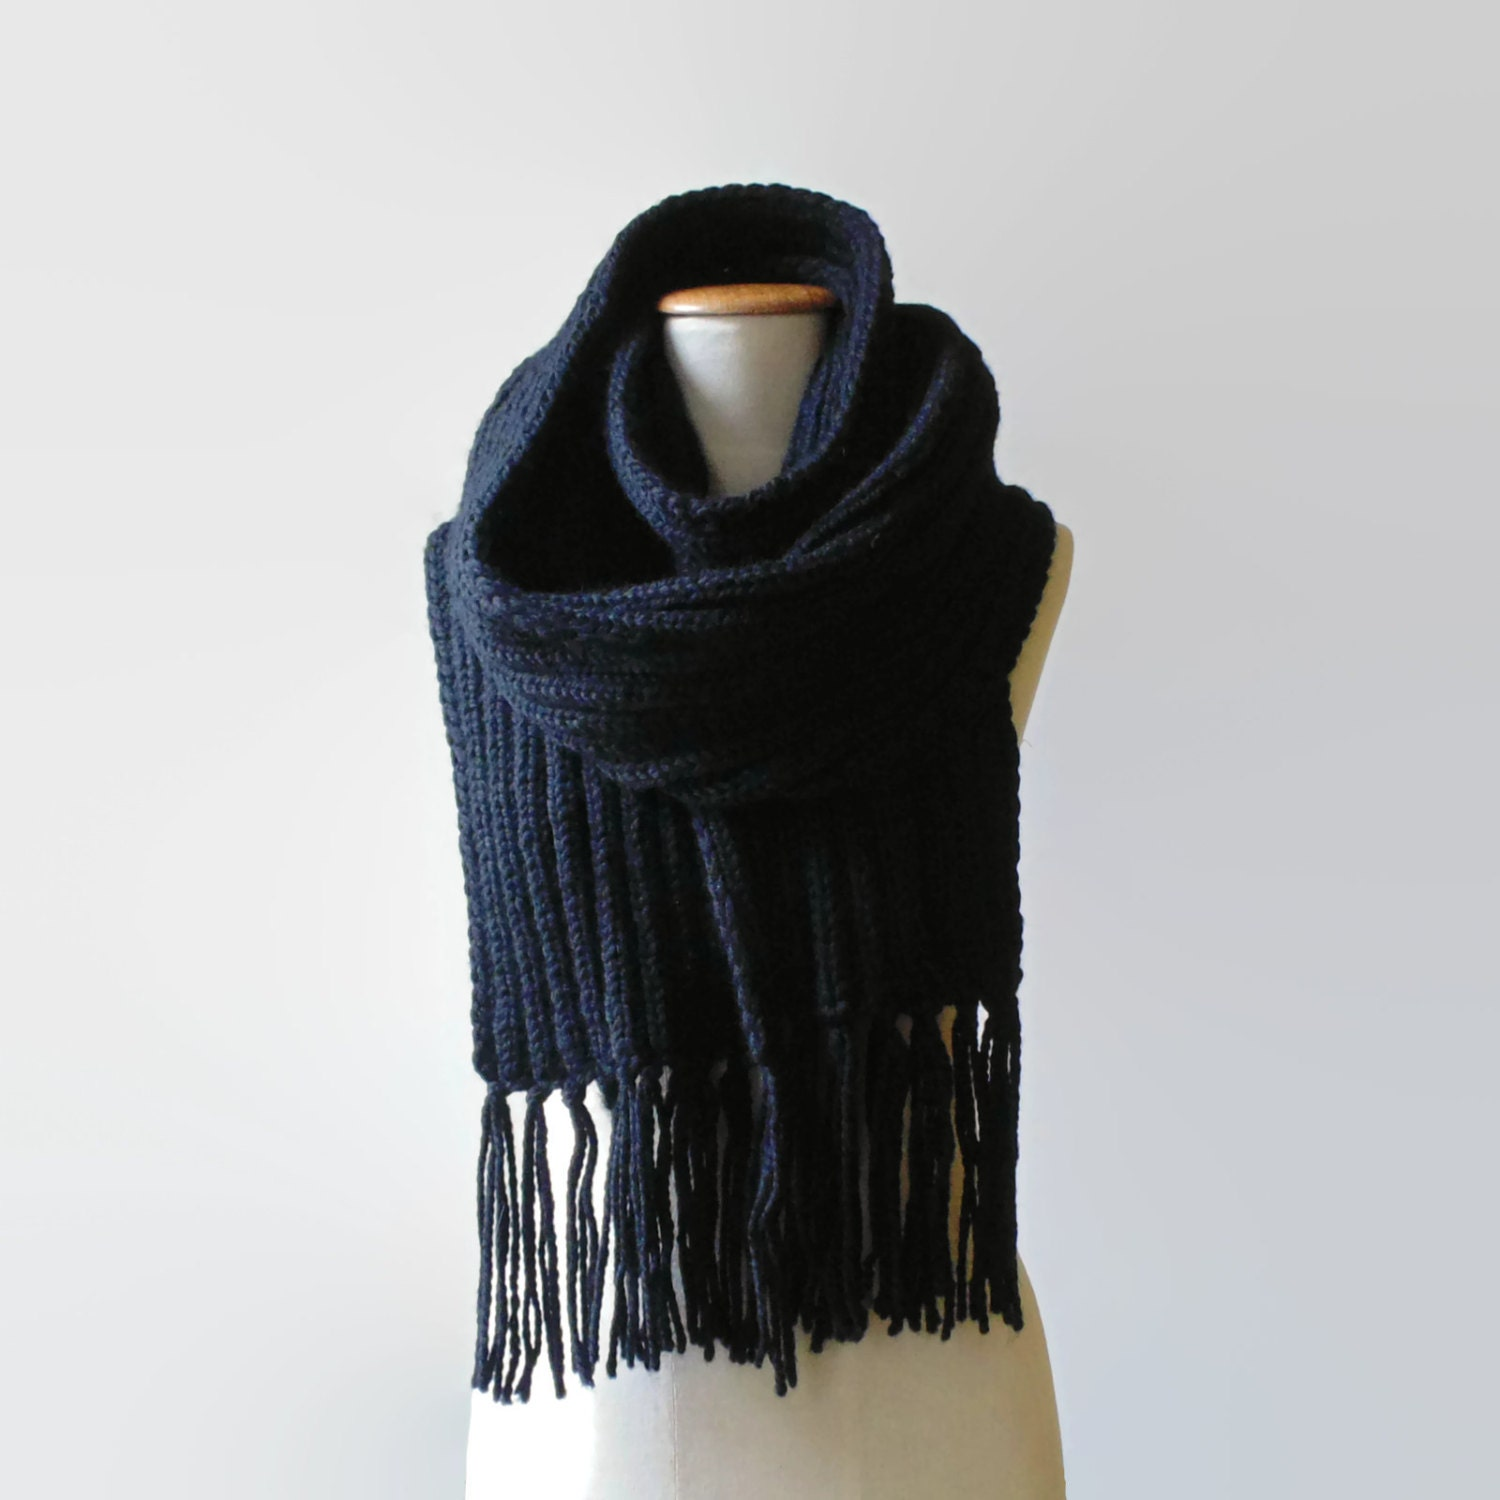 Discover scarves for women at ASOS. Shop our range of scarves, from head and cashmere scarves to snood, tartan and oversized scarves for all occasions. ASOS DESIGN Twist Block Headscarf In Black. £ ASOS DESIGN long tassel scarf in supersoft knit. £ Glamorous check thick tassel scarf.